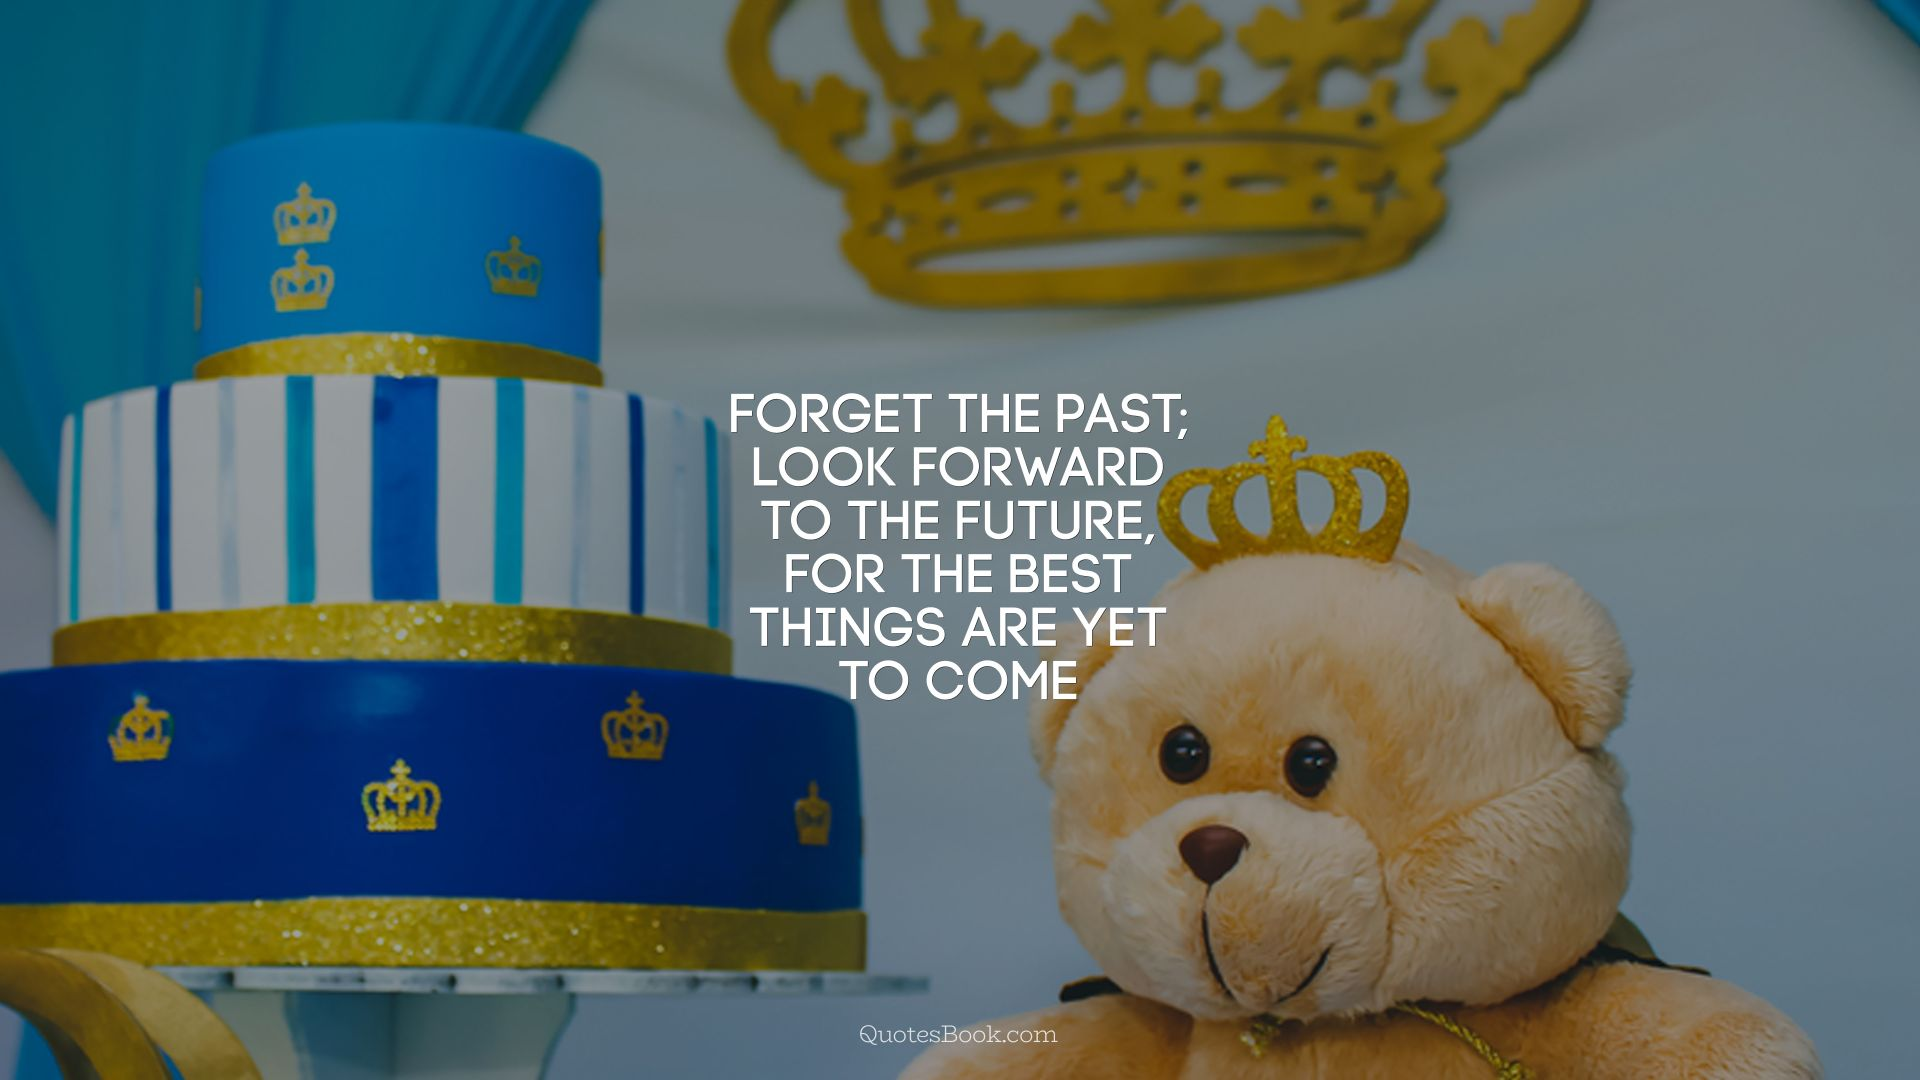 Forget the past; look forward to the future, for the best things are yet to come